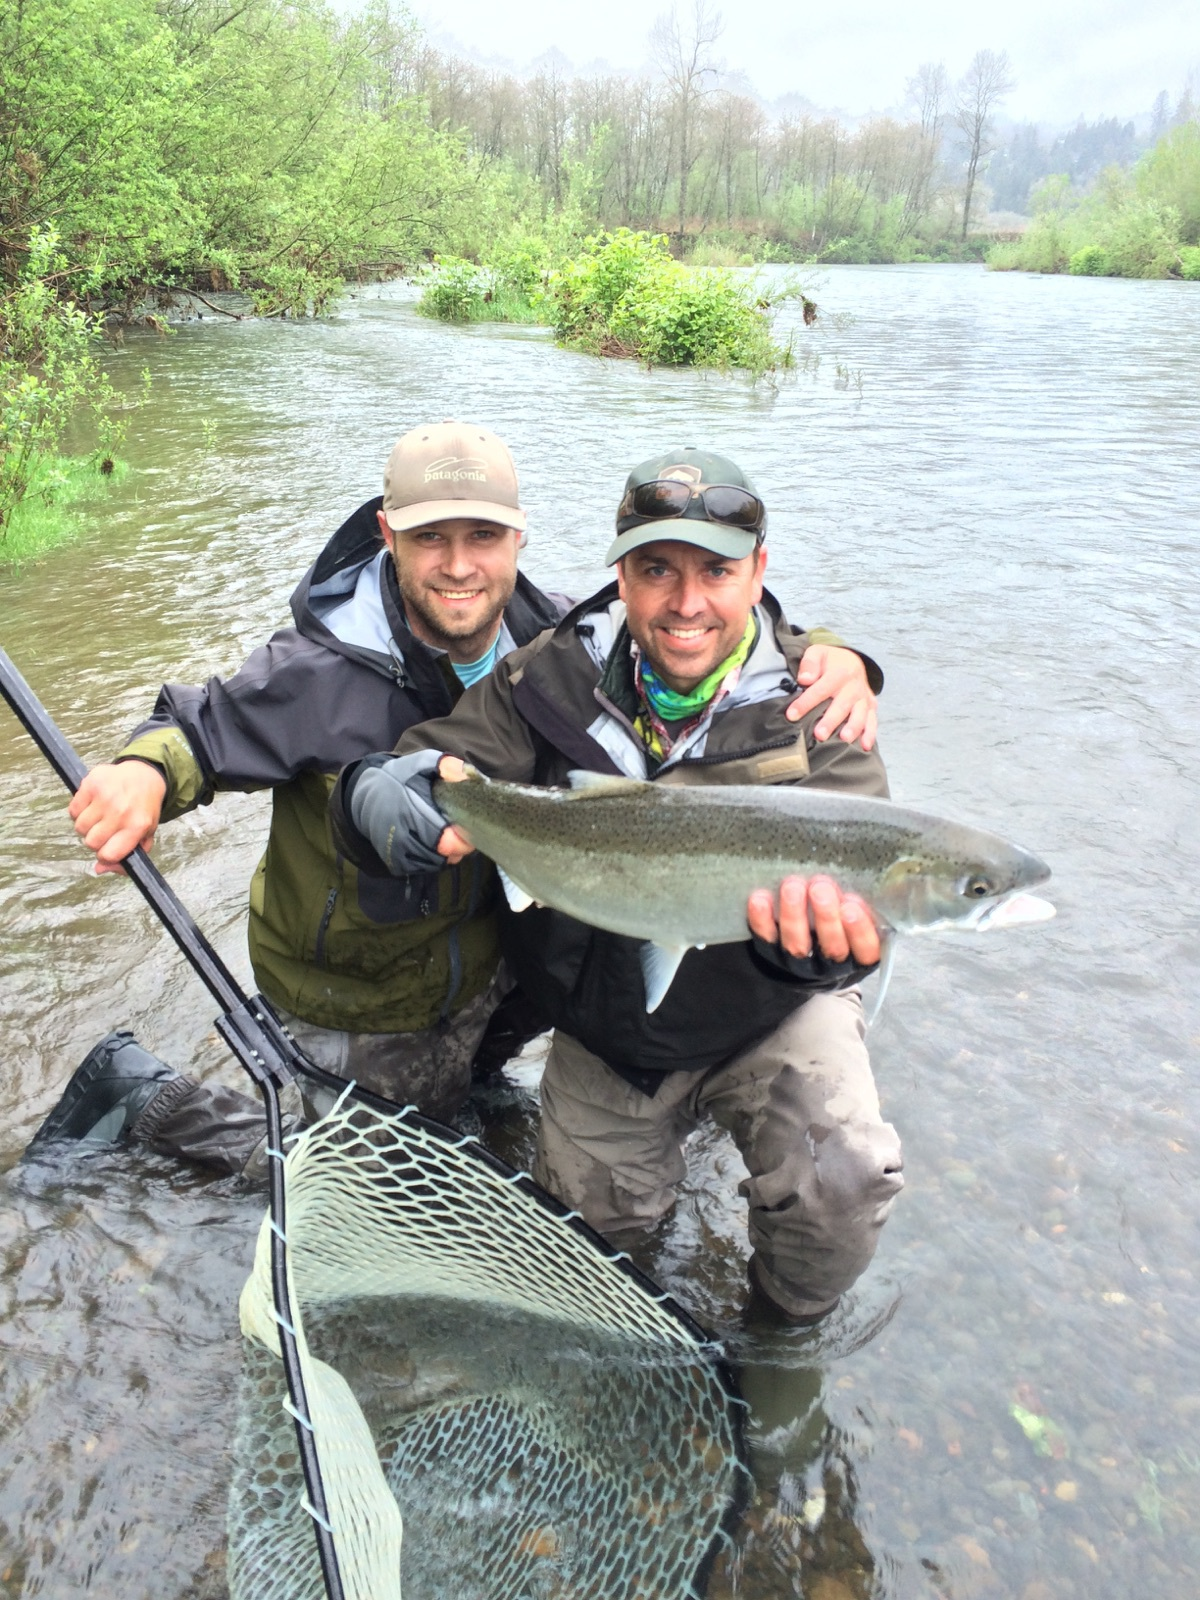 Steelhead Fly Fishing, Fly Fishing Southern Oregon, Rogue River Fly Fishing, medford oregon fly fishing shop and guide service